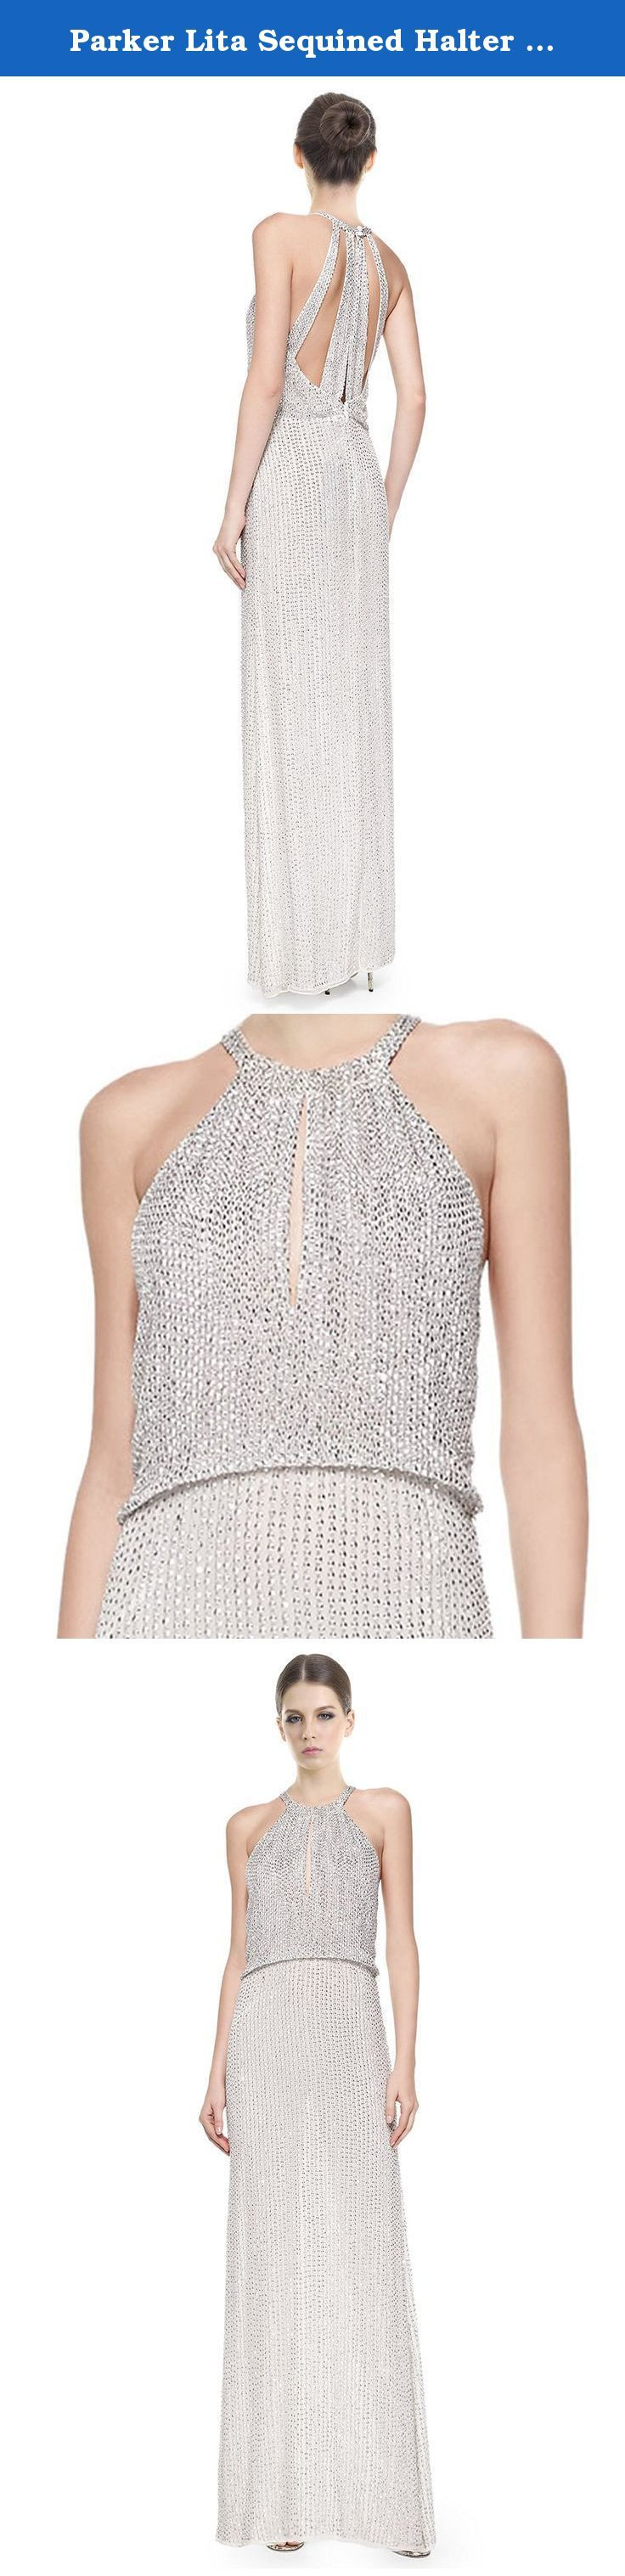 "Parker Lita Sequined Halter Blouson Evening Gown Dress. Parker Evening sequined evening gown. Halter neckline with keyhole center; strappy back with button closure. Blouson top. A-line skirt, slit on left, 12""L. Back zip."